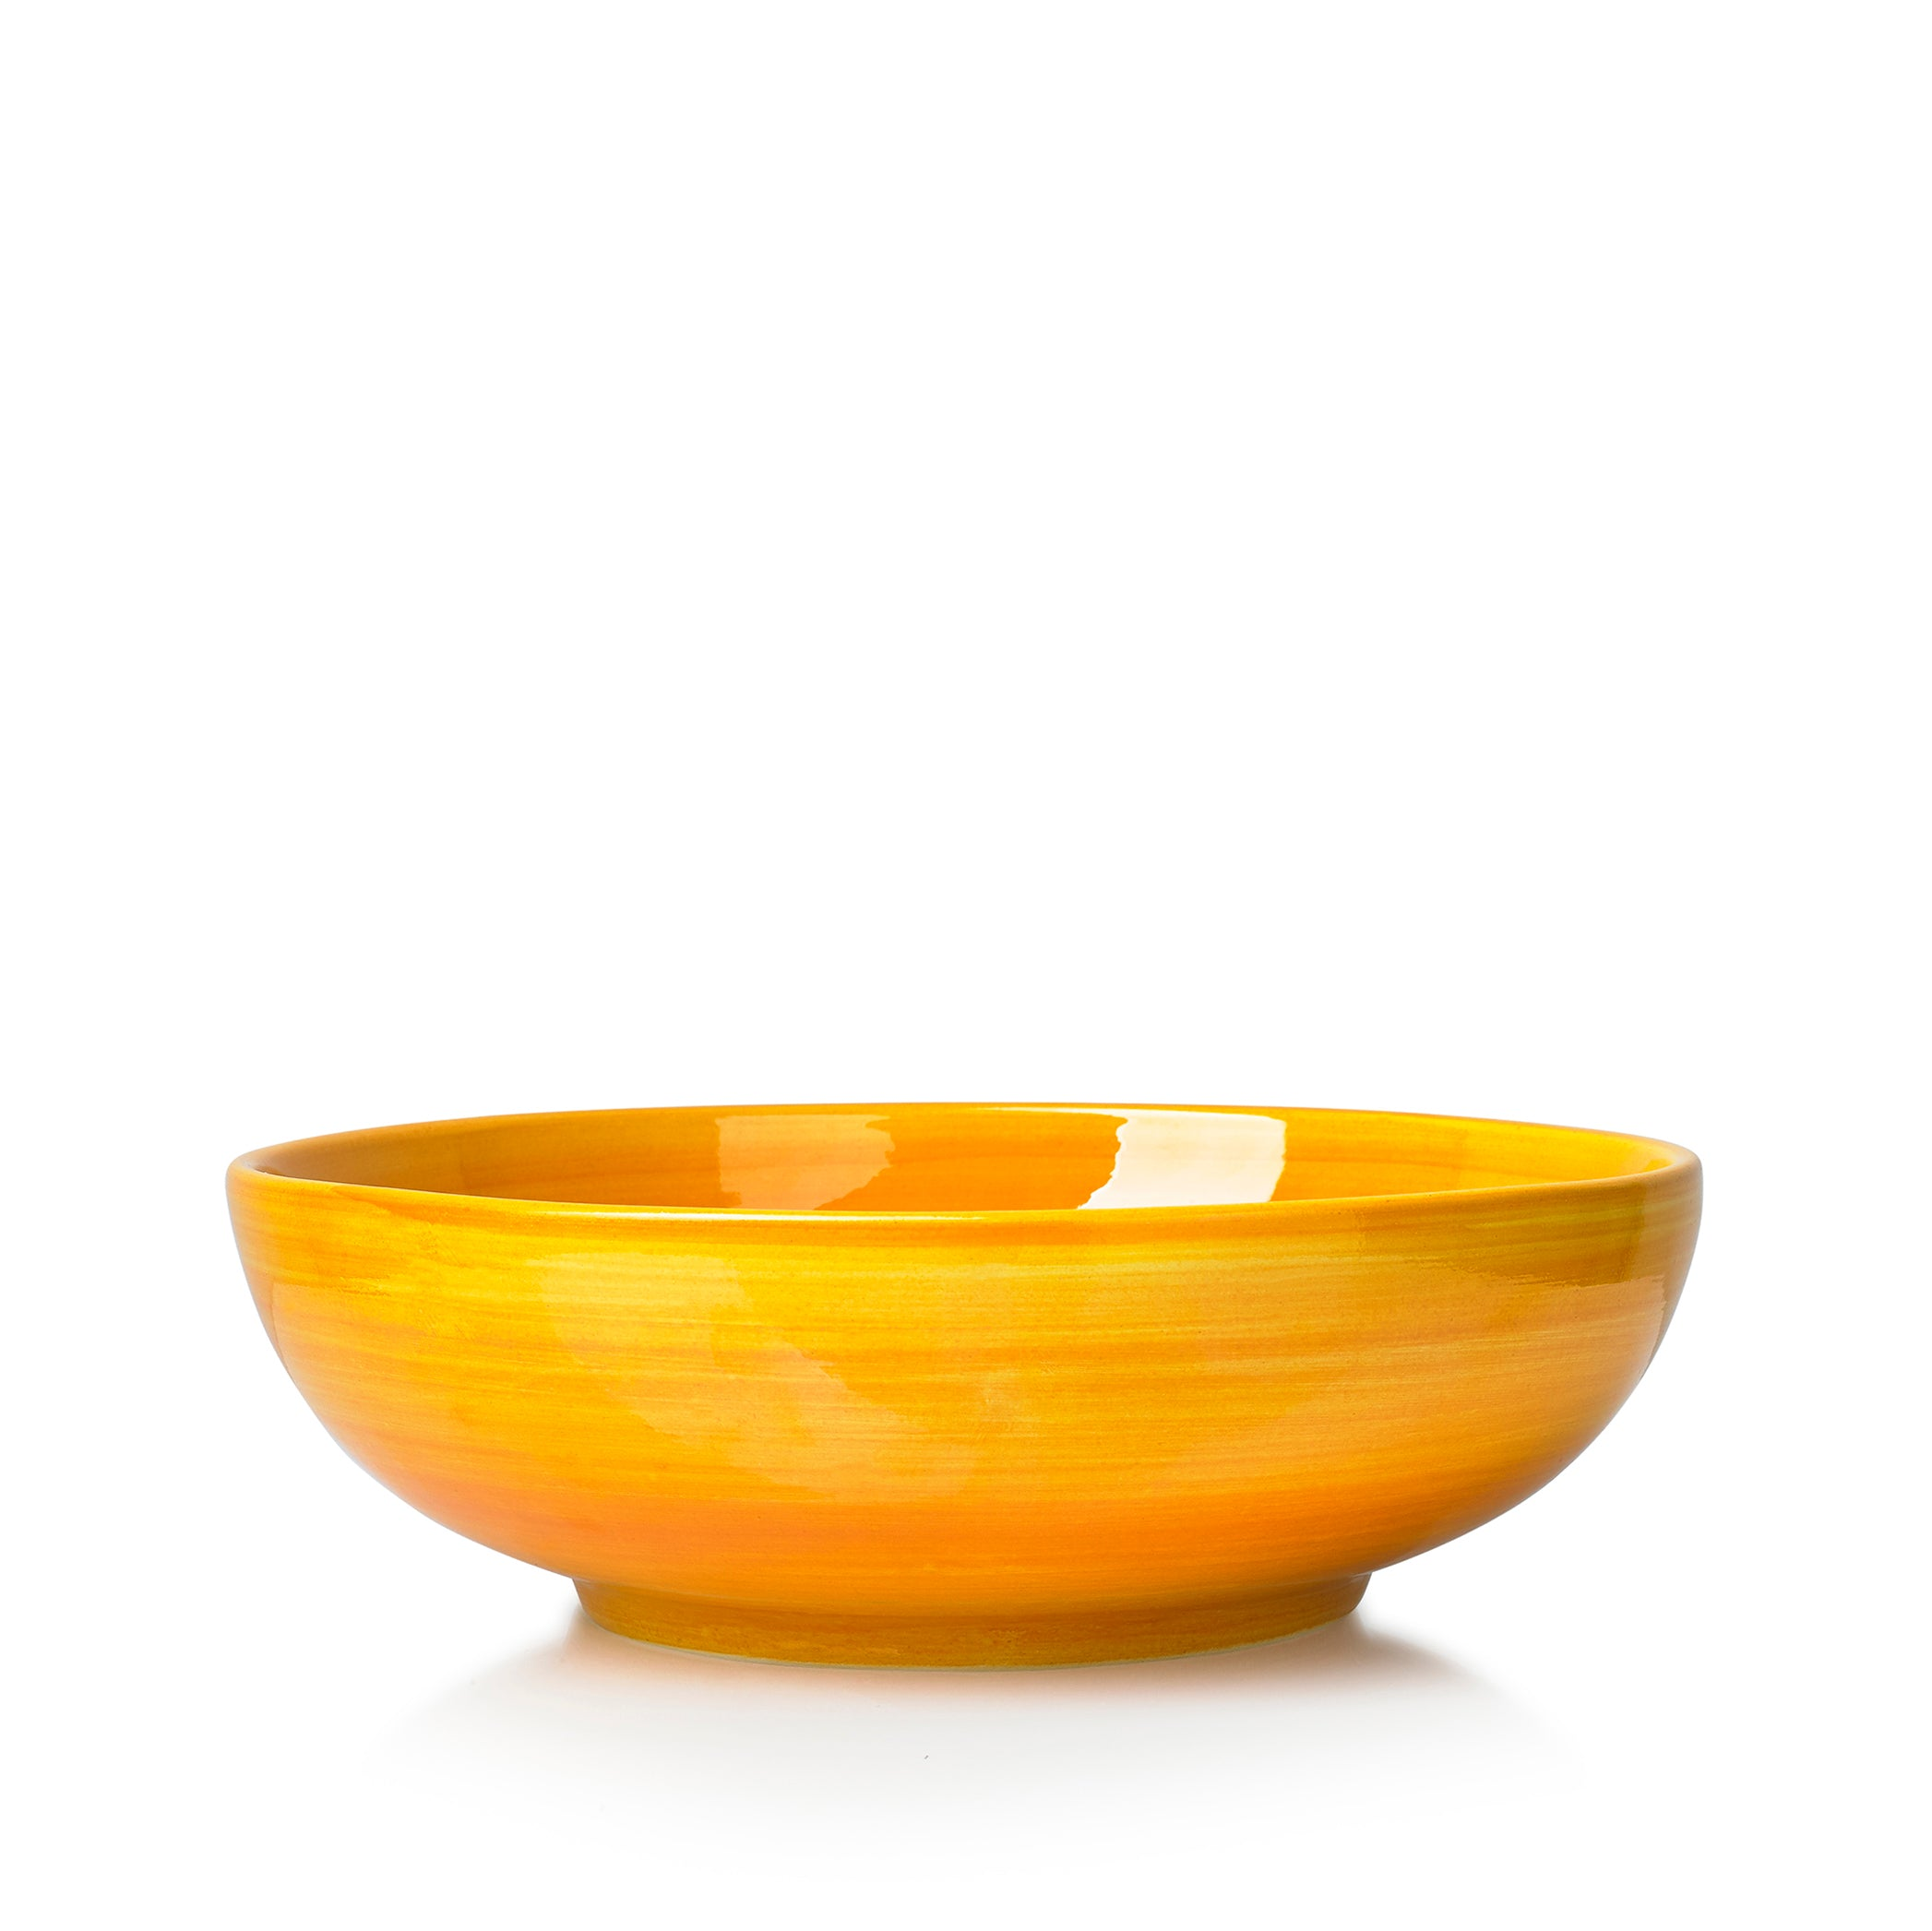 "S&B ""La Couronne"" 25cm Ceramic Serving Bowl in Yellow"